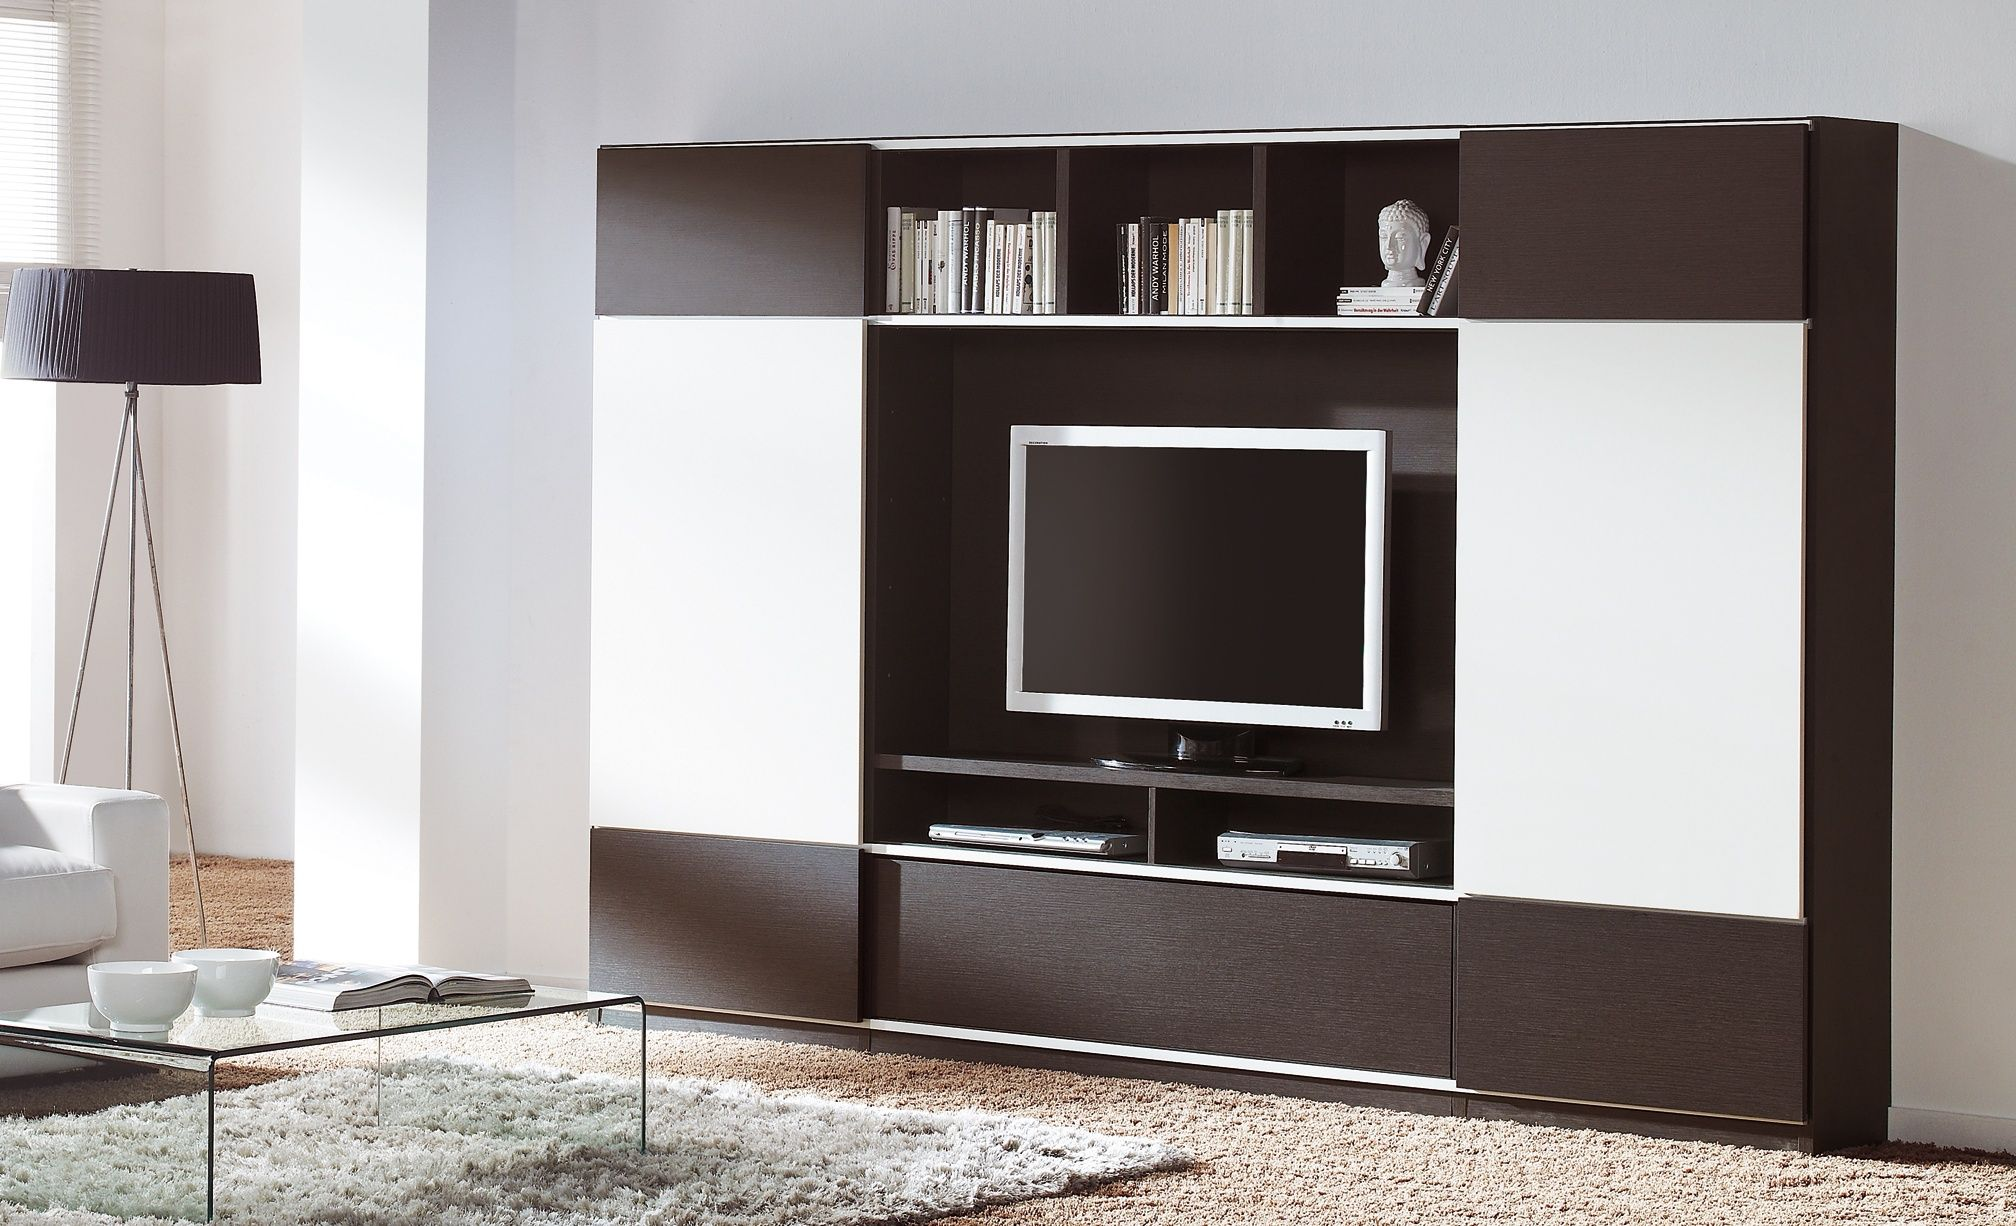 Sliding Door Sliding Doors Tv Cabinet · Shelving IdeasShelving UnitsTv ...